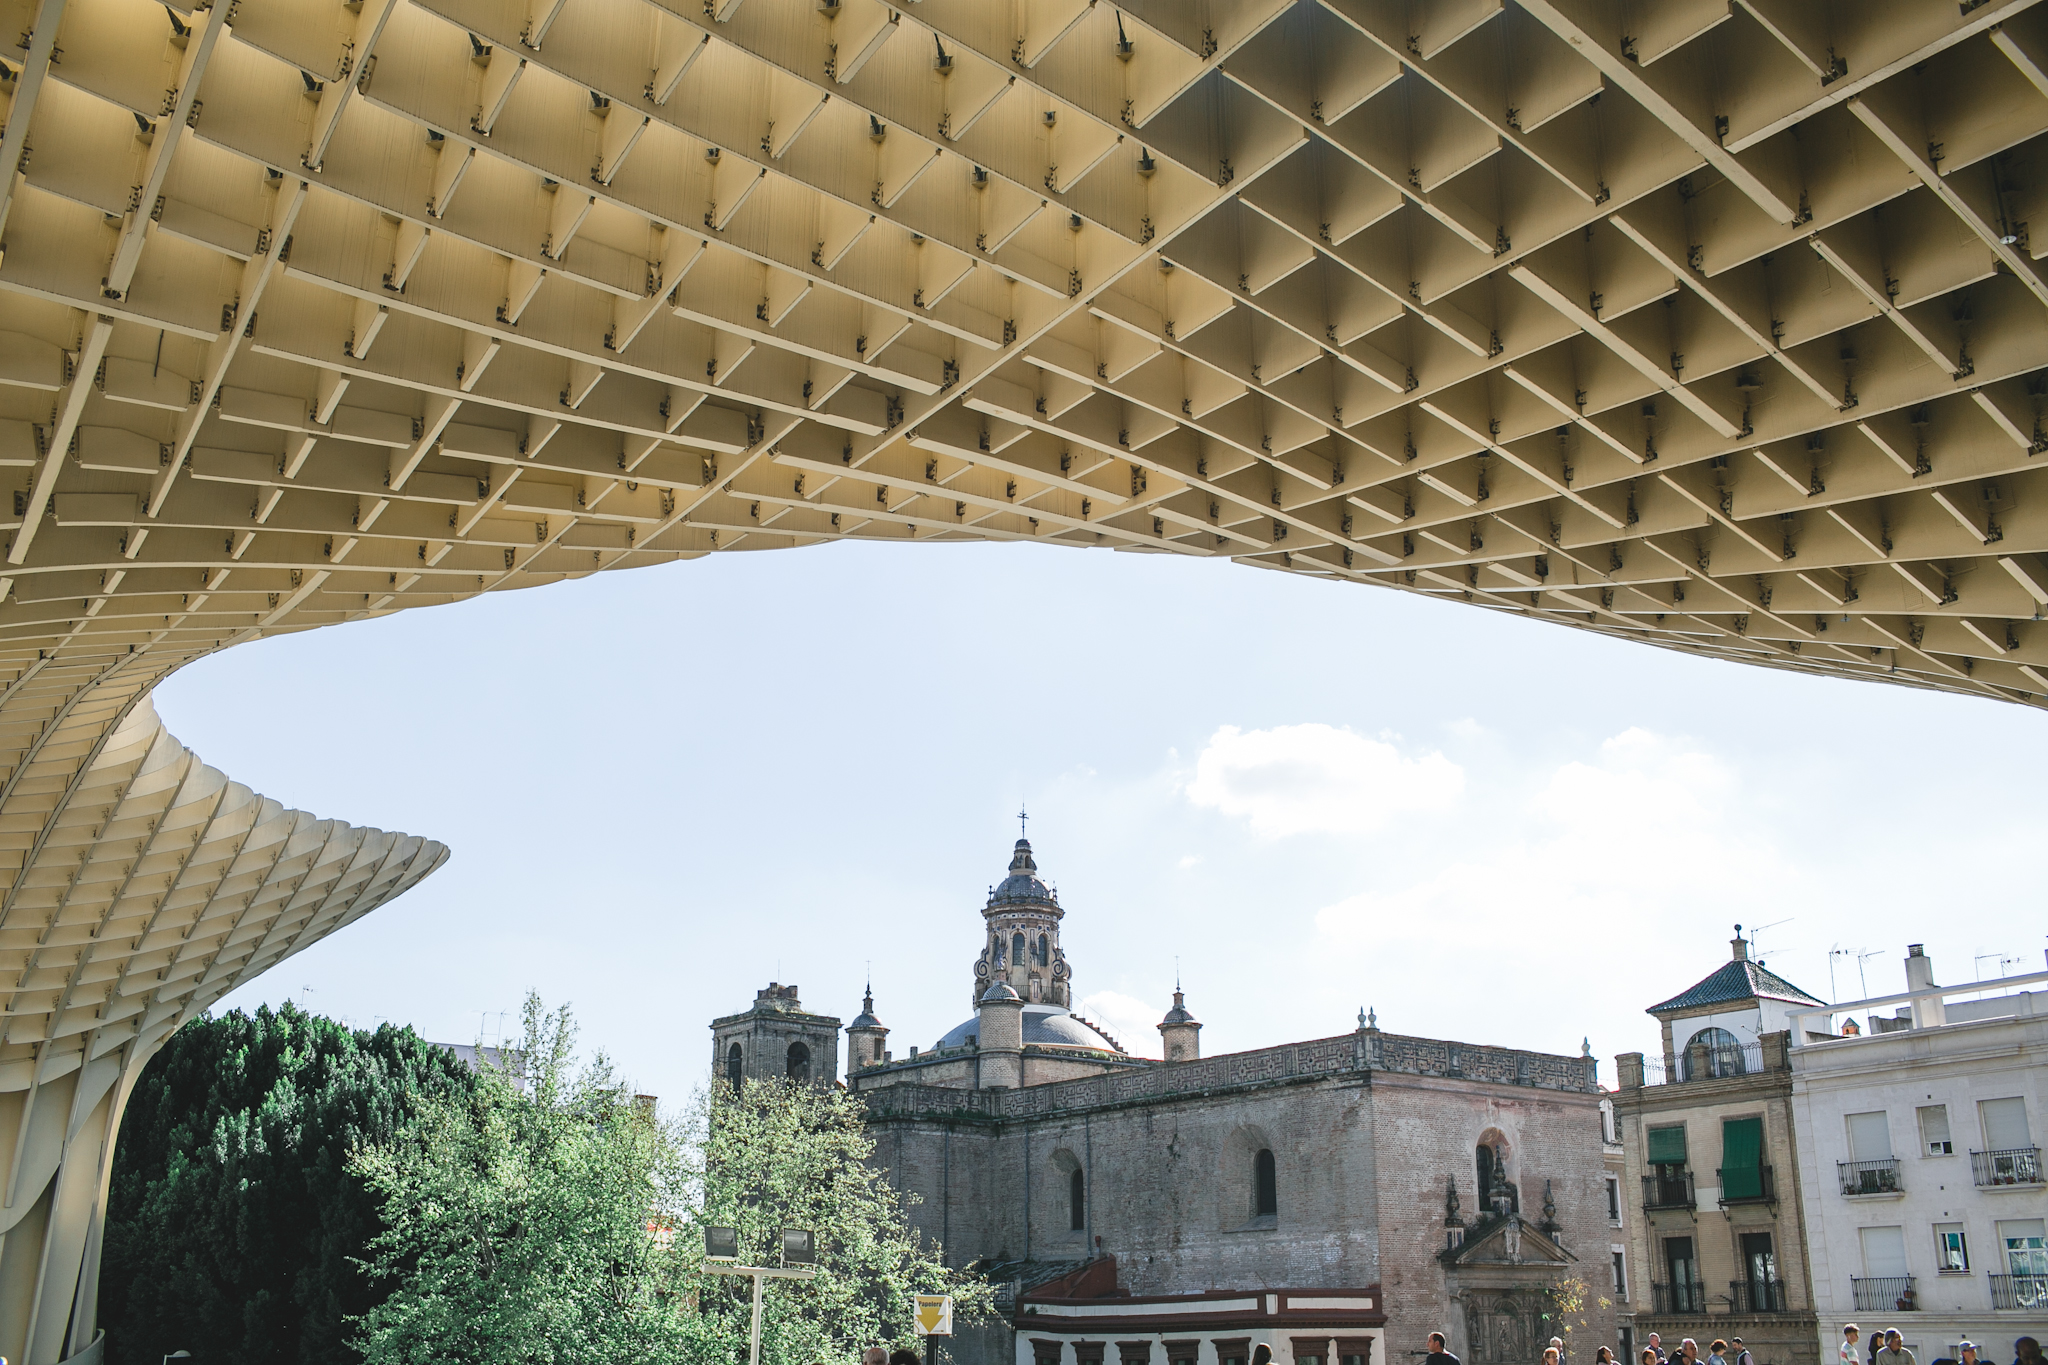 I wasn't so sure how I felt about this new modern structure sitting in the middle of beautiful old town Seville.